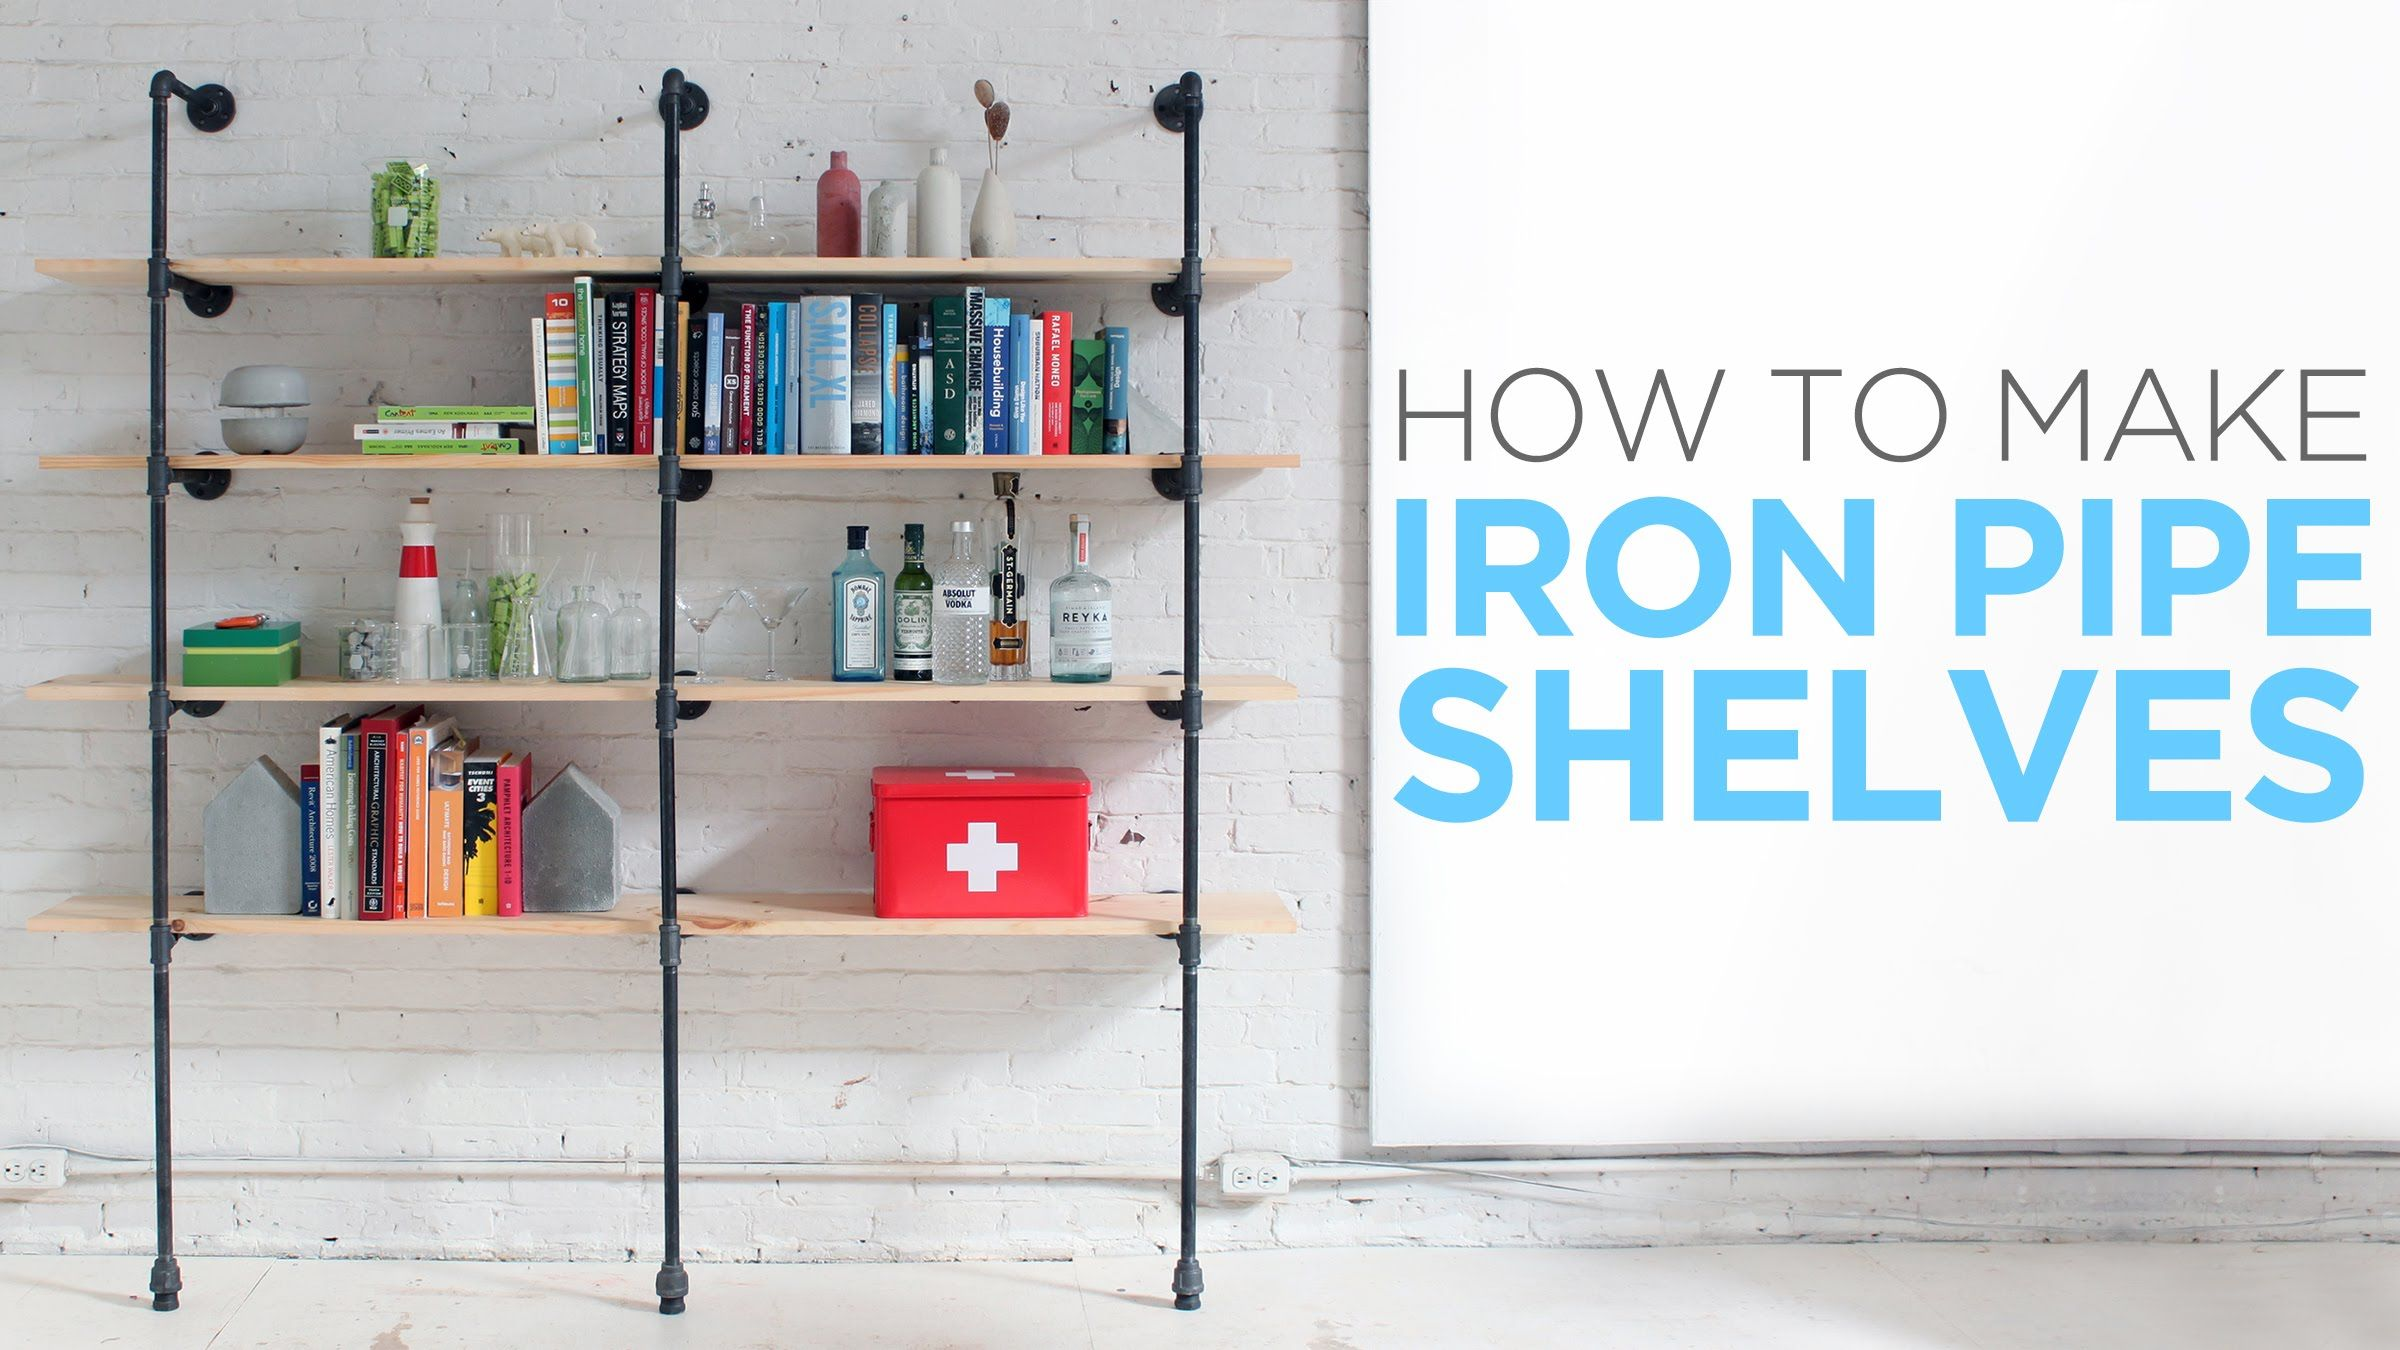 how to make iron pipe shelves | i have a crush on you | pinterest